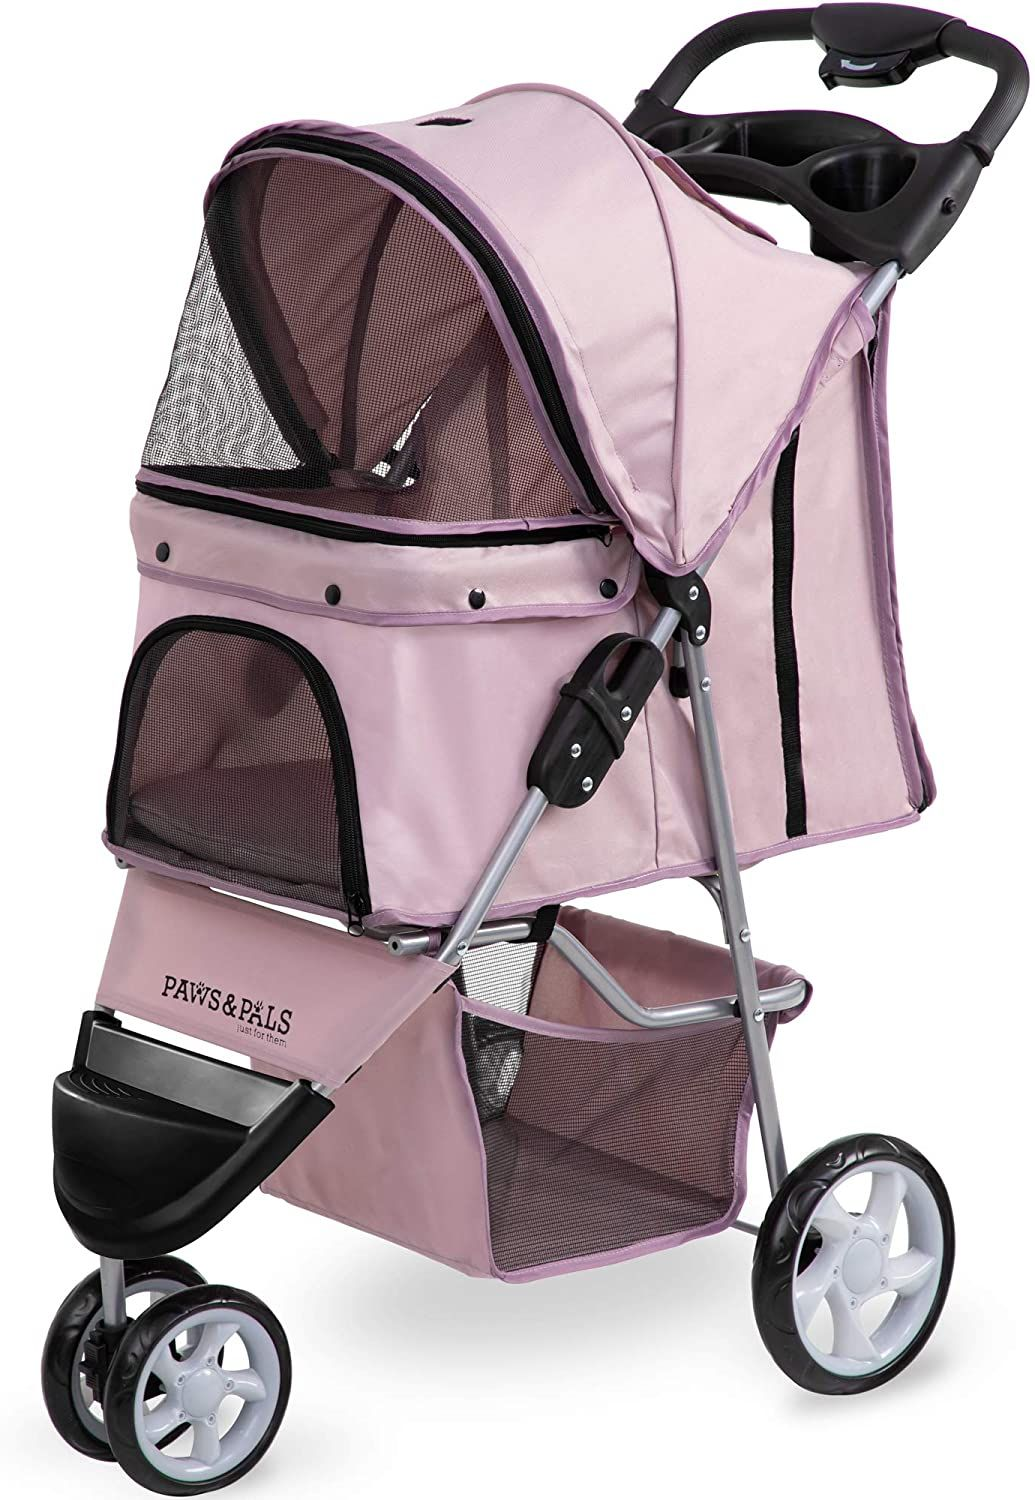 Paws pals dog stroller pet strollers for